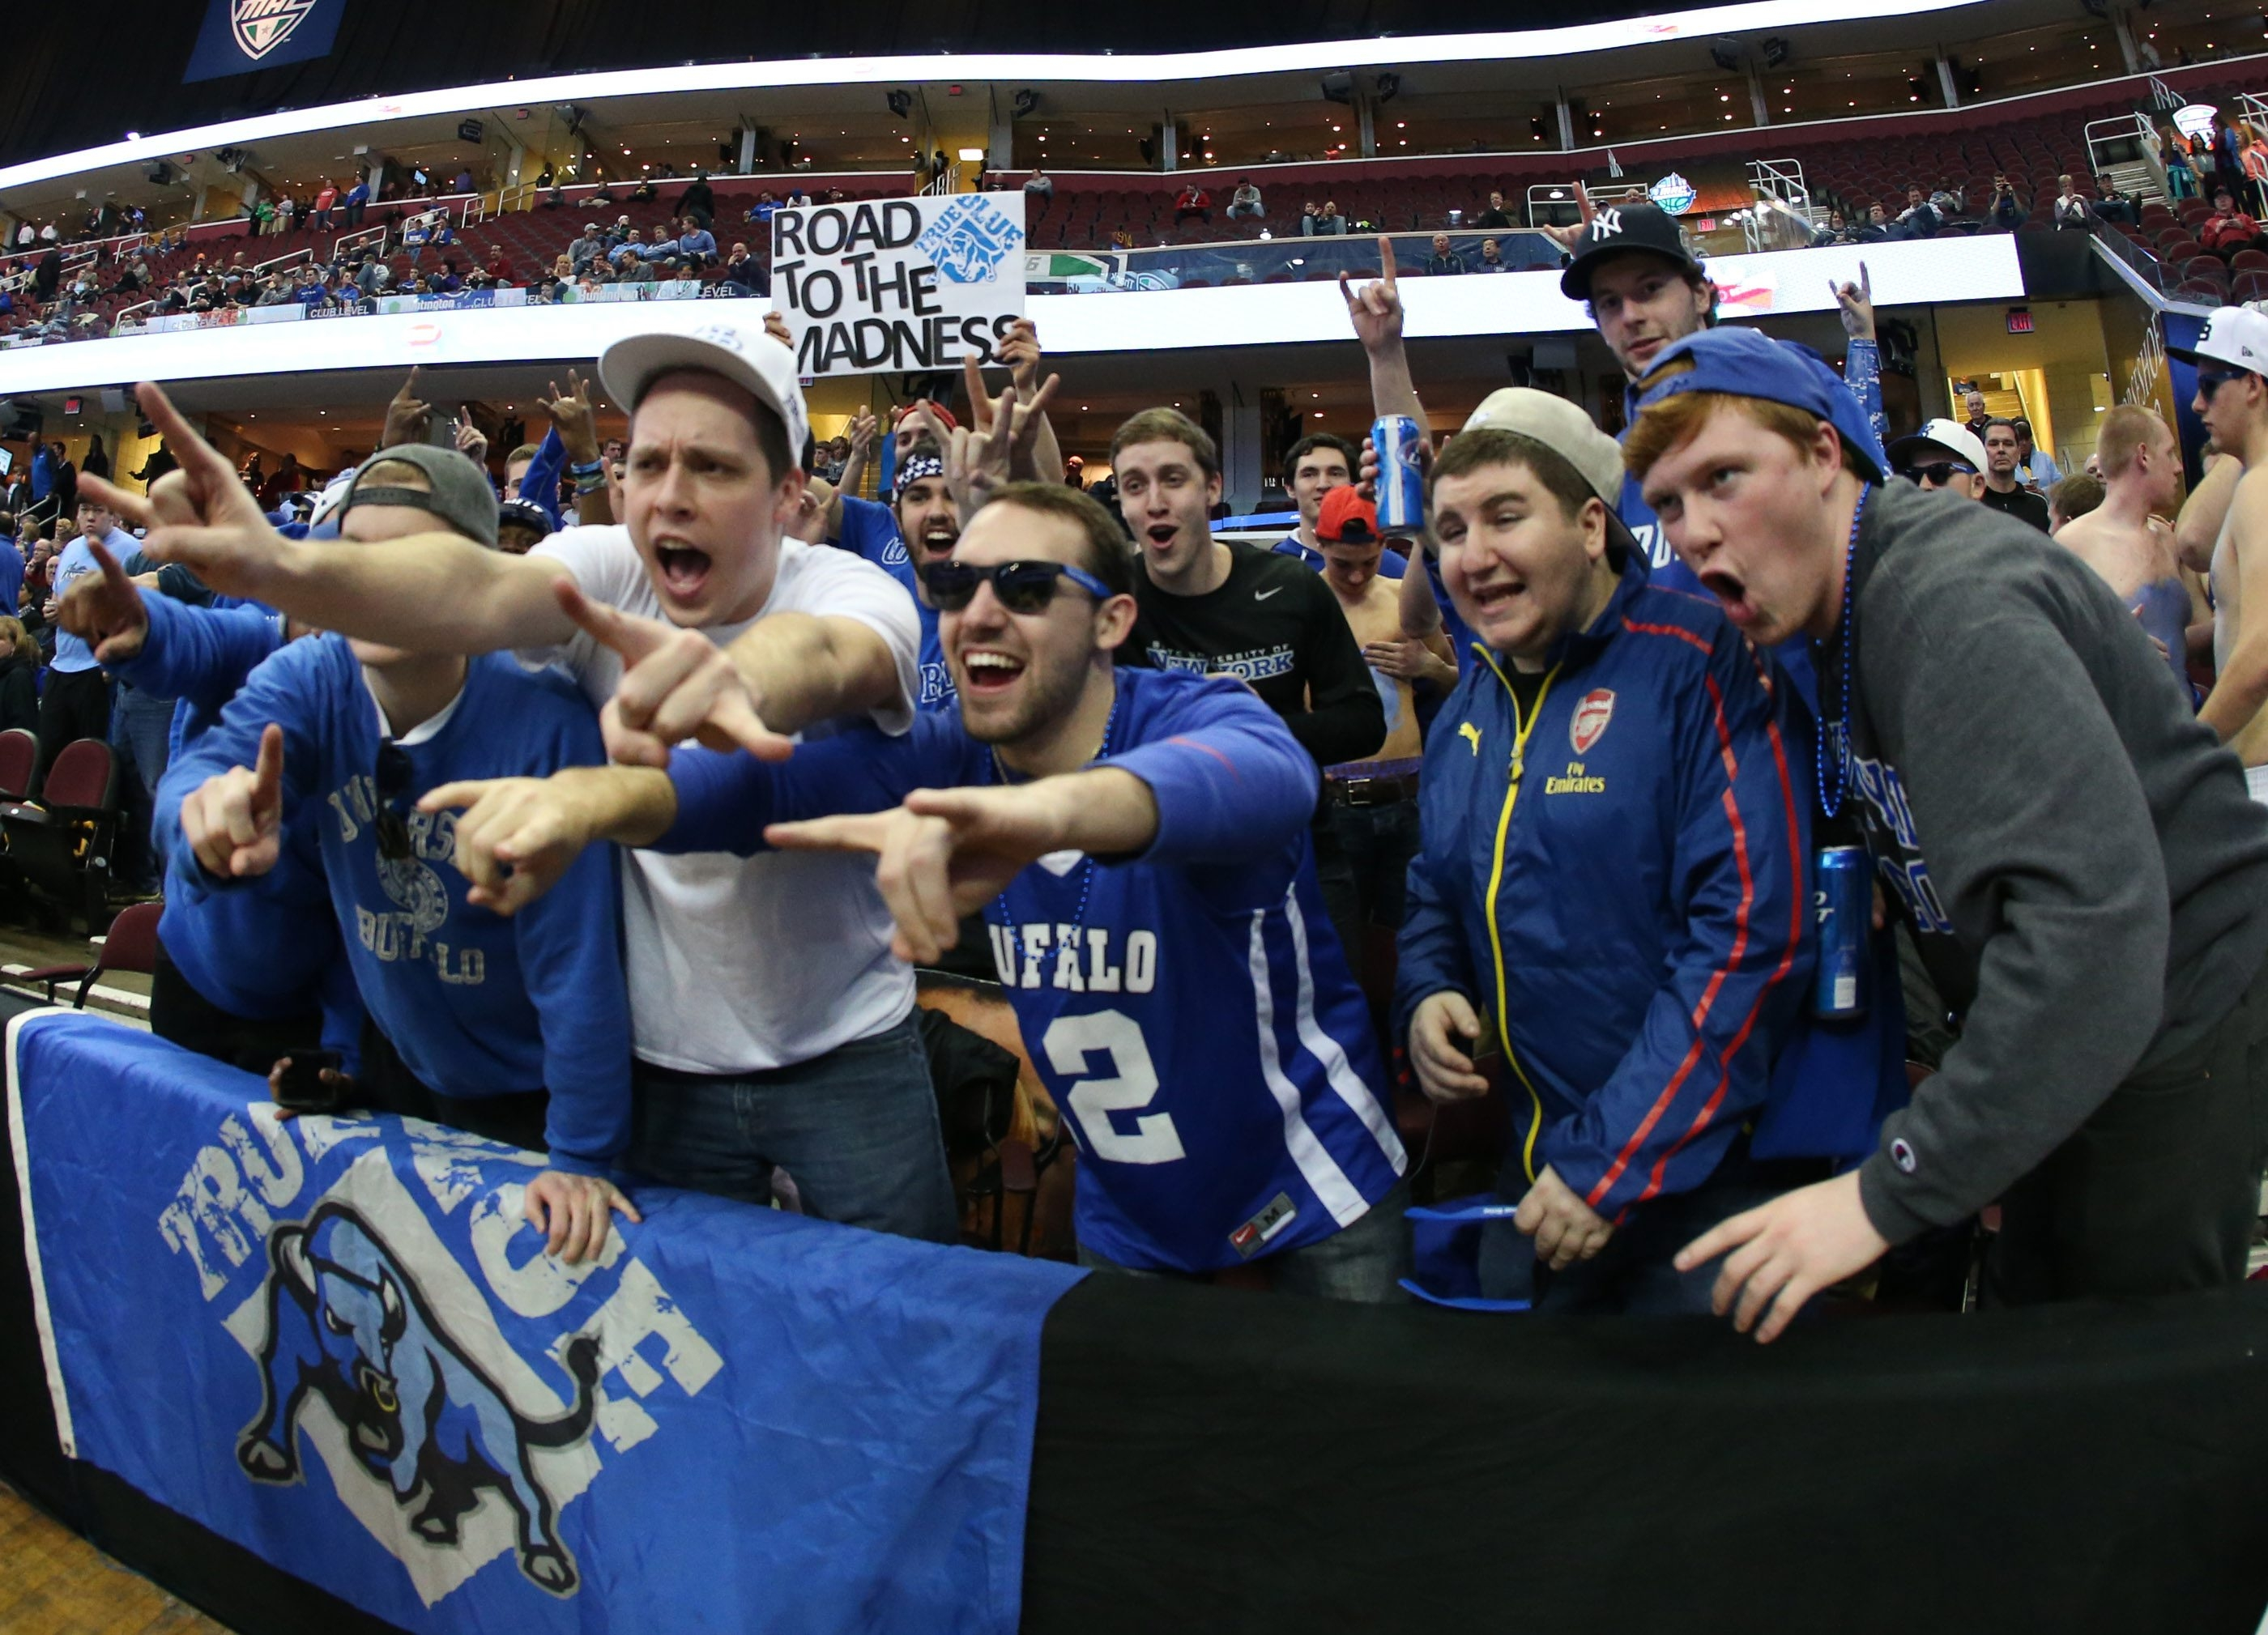 Buffalo Bulls fans greet the players as they enter the court. (James P. McCoy/ Buffalo News)